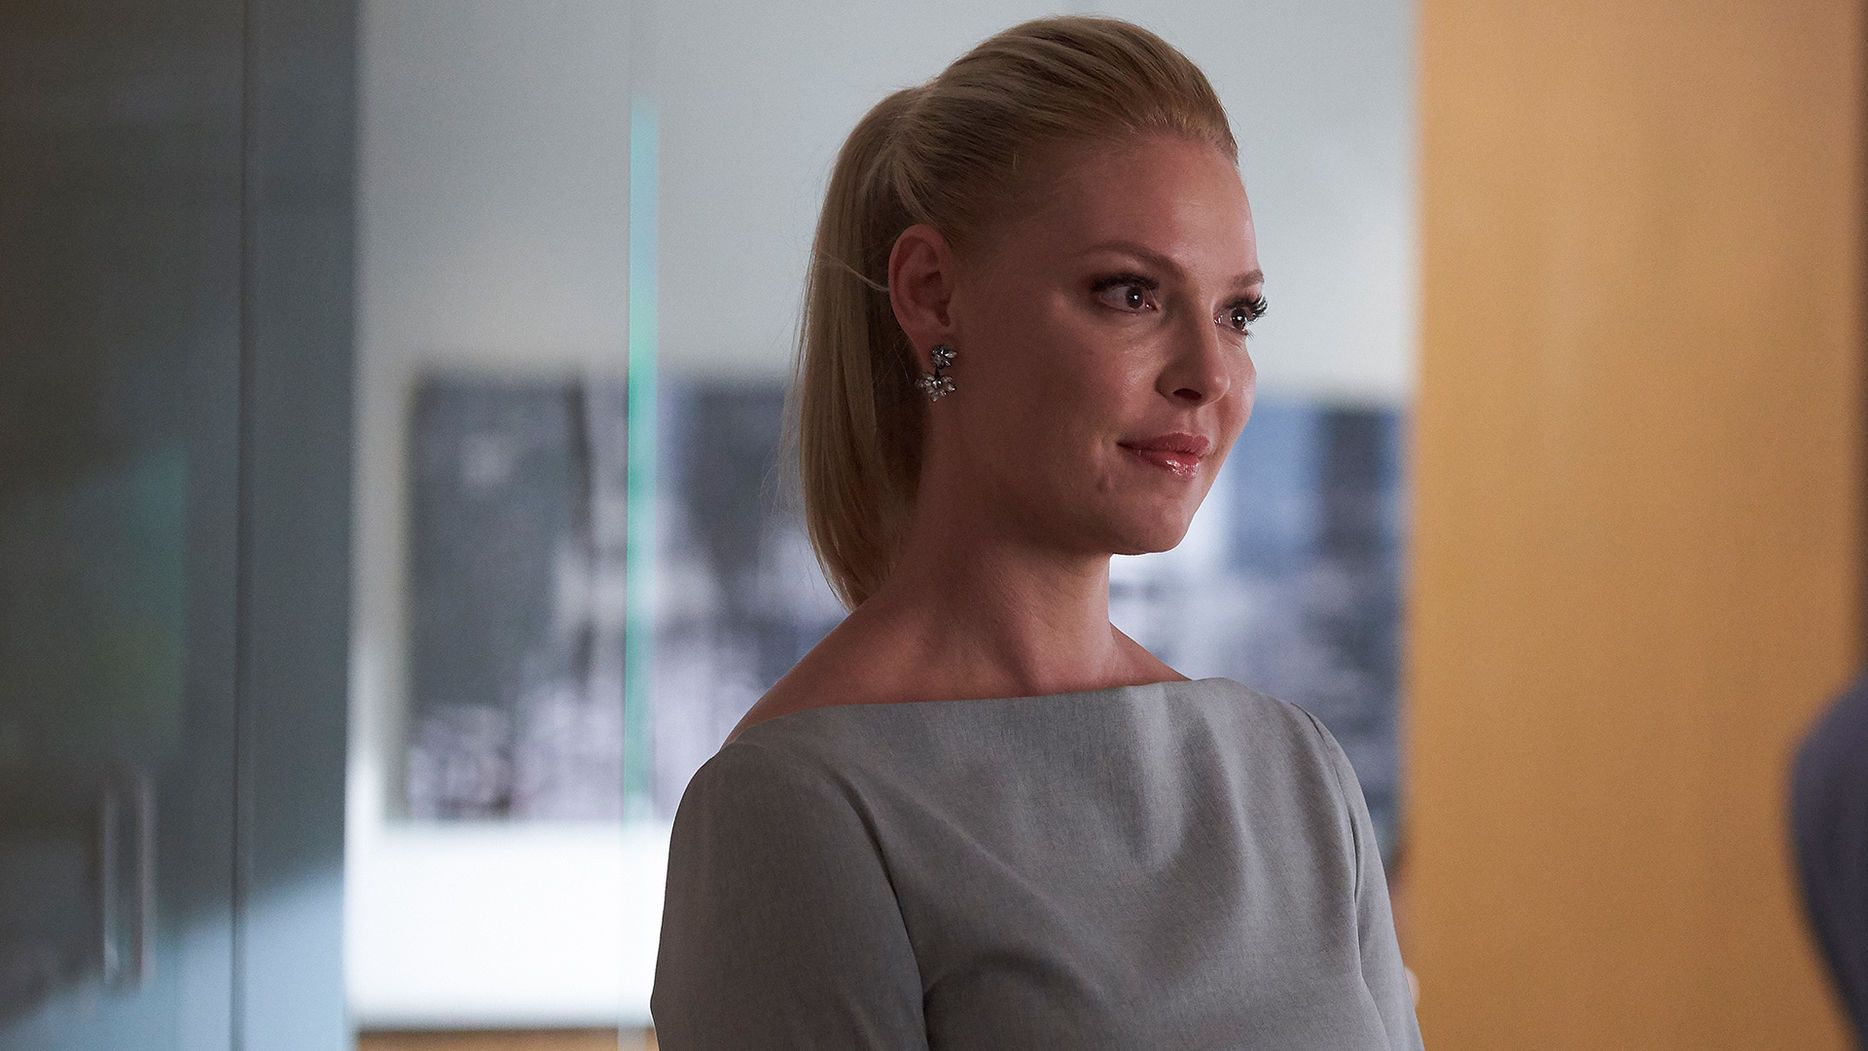 Katherine Heigl Set to Executive Produce and Star in Drama Series